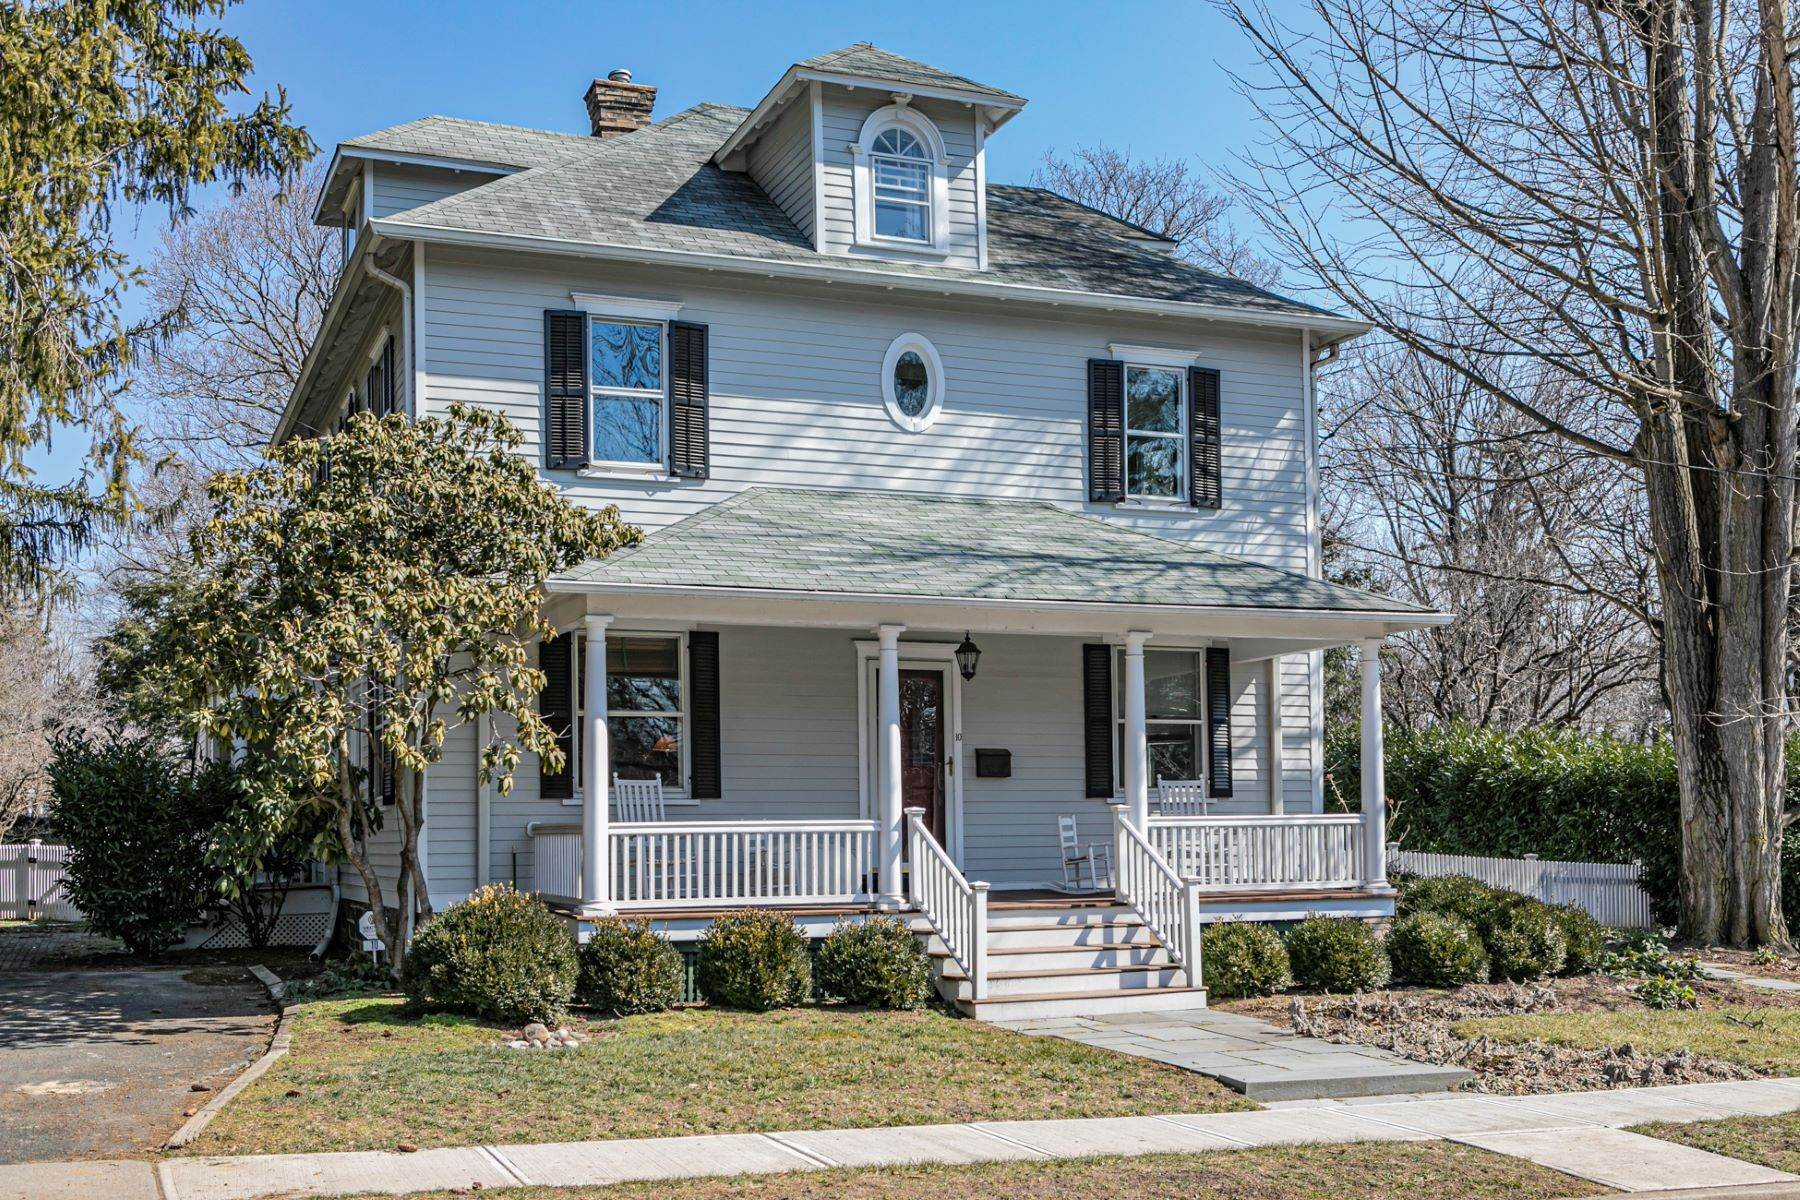 2. Single Family Homes for Sale at Picture Perfect Home Steps From Main Street 10 Green Avenue, Lawrenceville, New Jersey 08648 United States